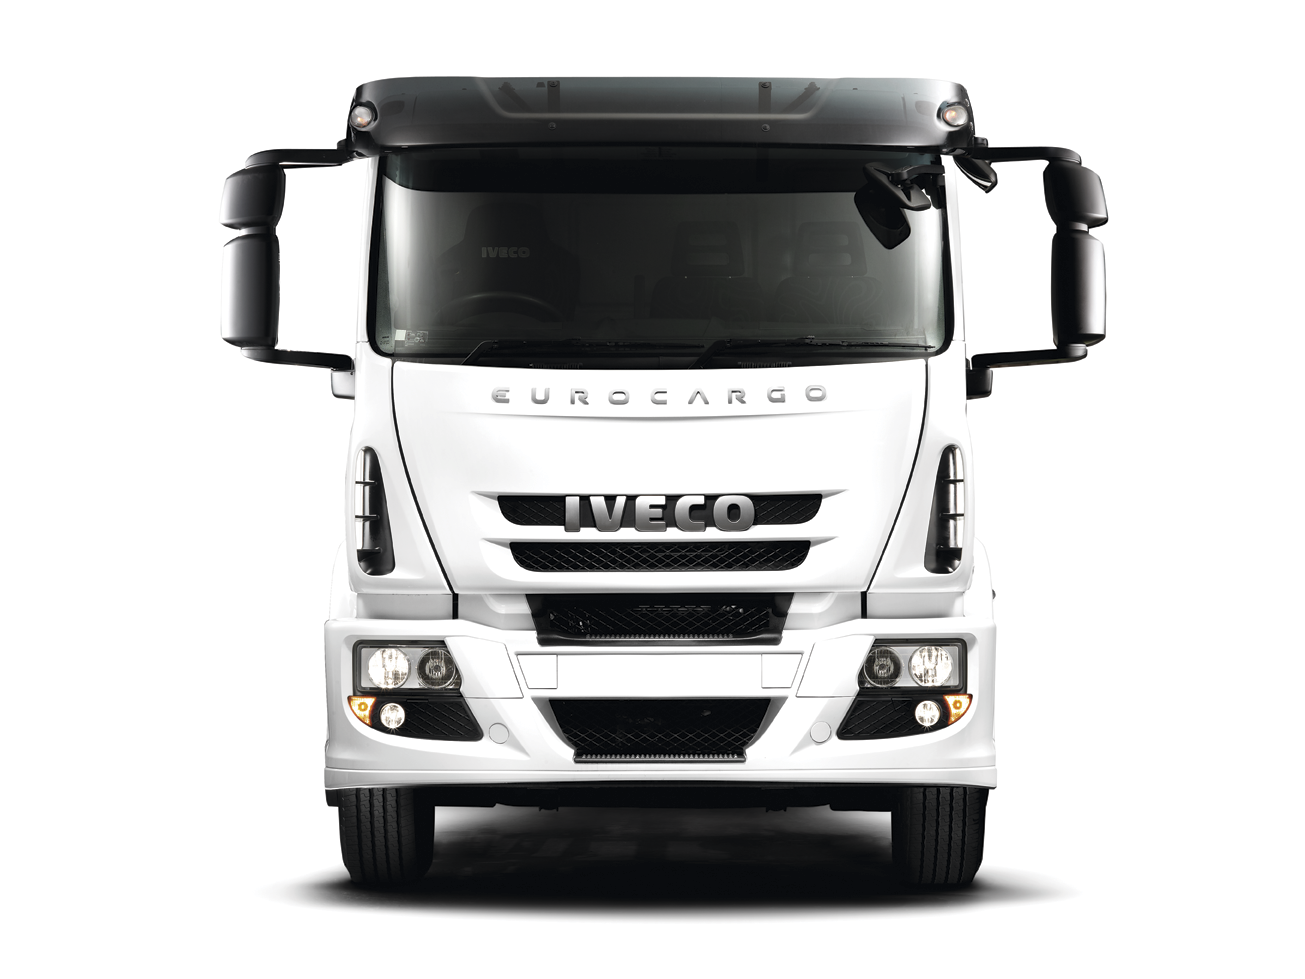 Free Truck Front Png, Download Free Clip Art, Free Clip Art.